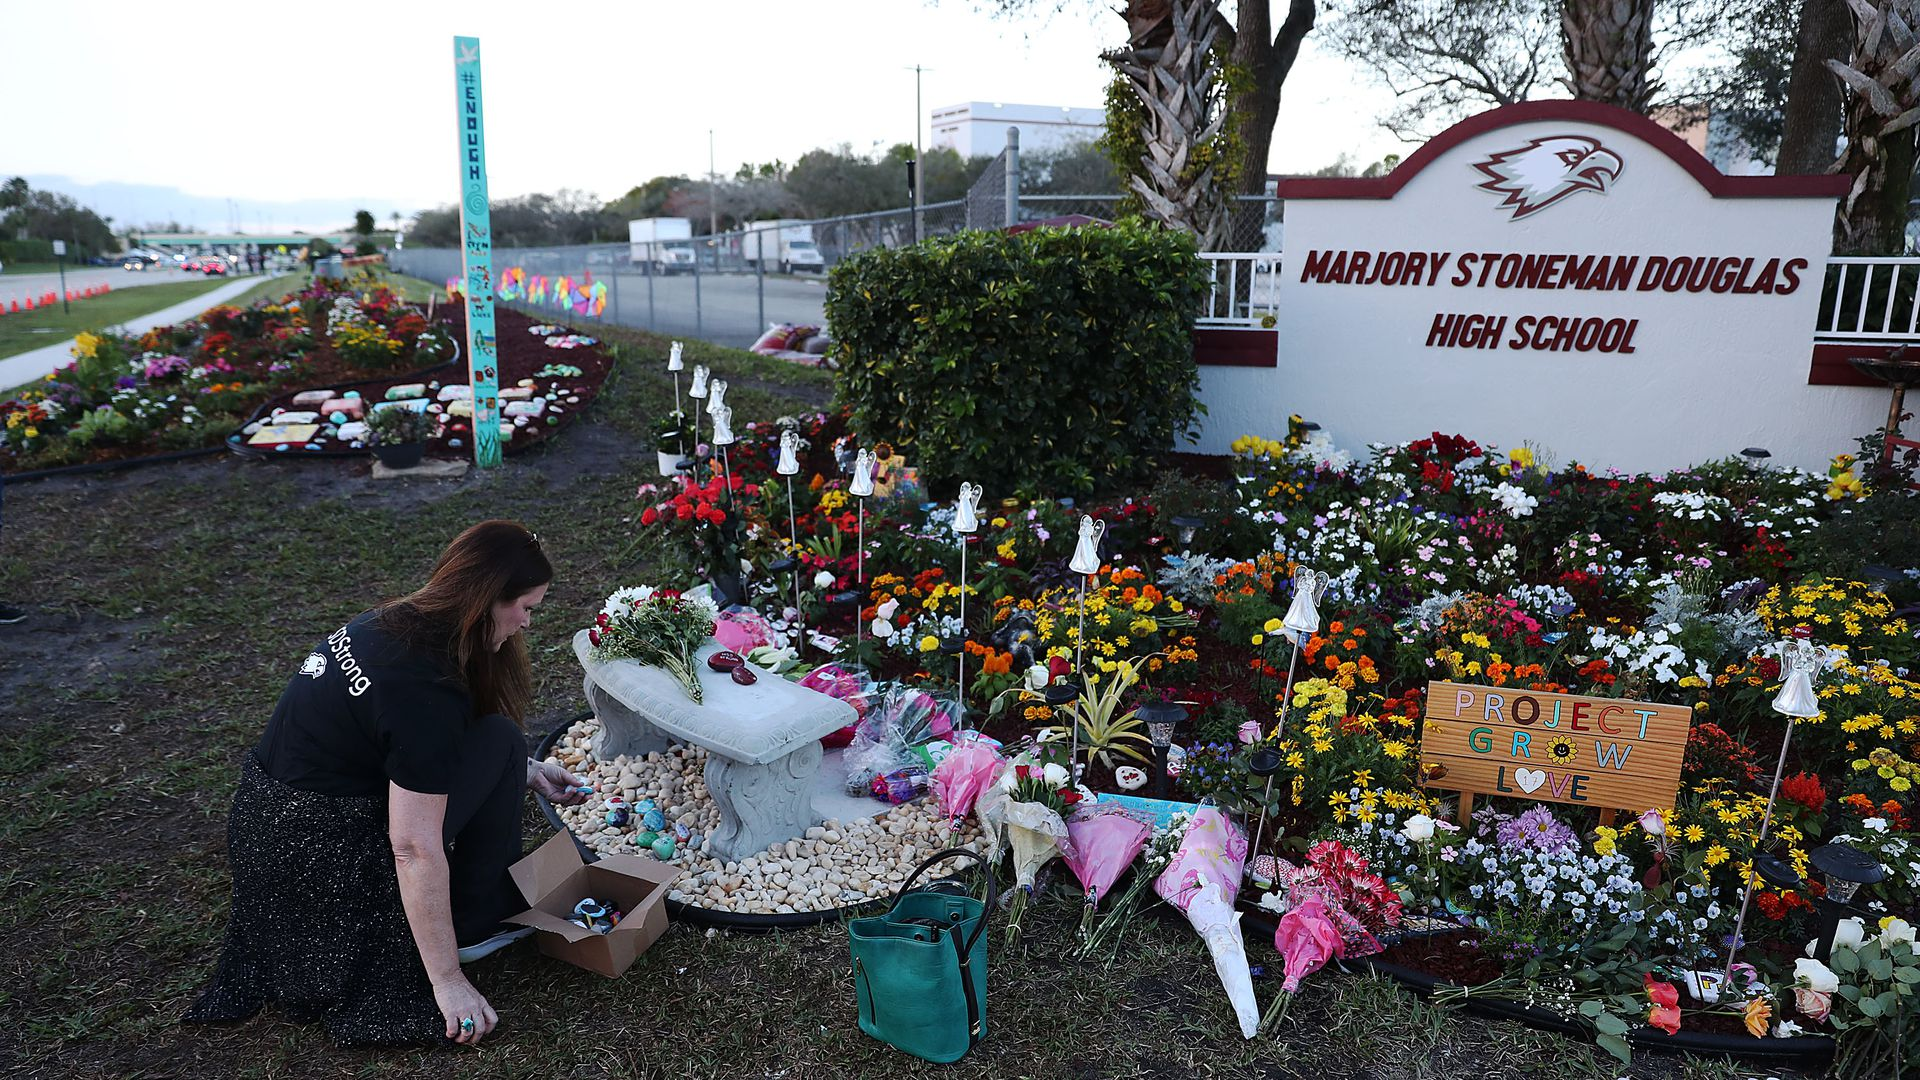 This image shows a large memorial of flowers and plaques underneath the Stoneman Douglas High School welcome sign.